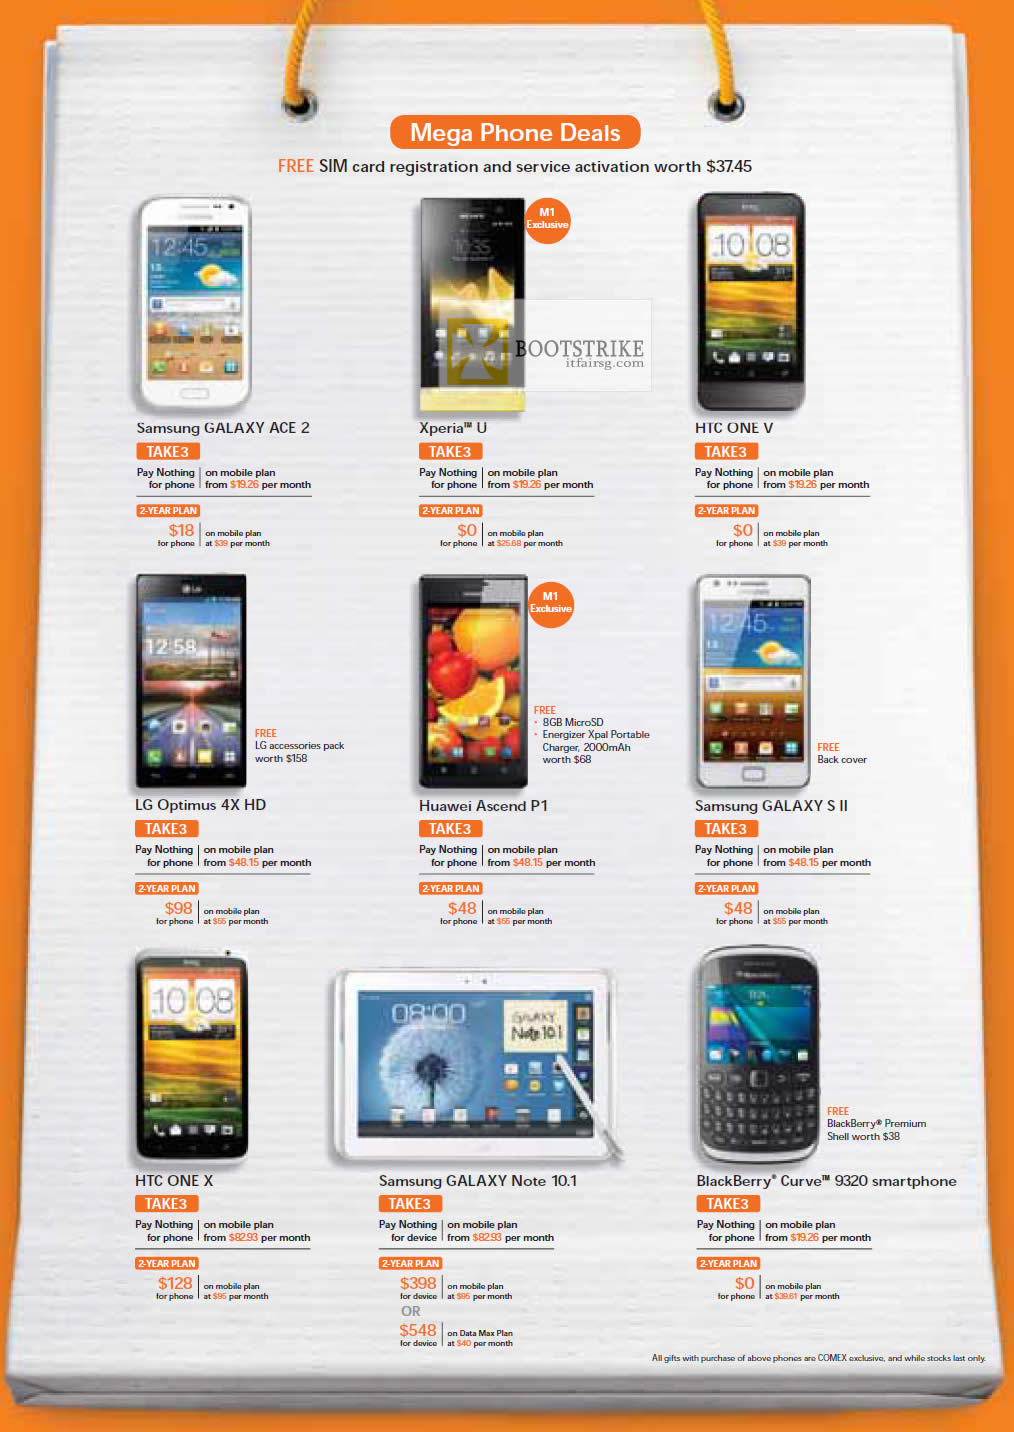 Samsung Galaxy Ace 2, S II, Note 10.1, Sony Xperia U, HTC One V, X, LG